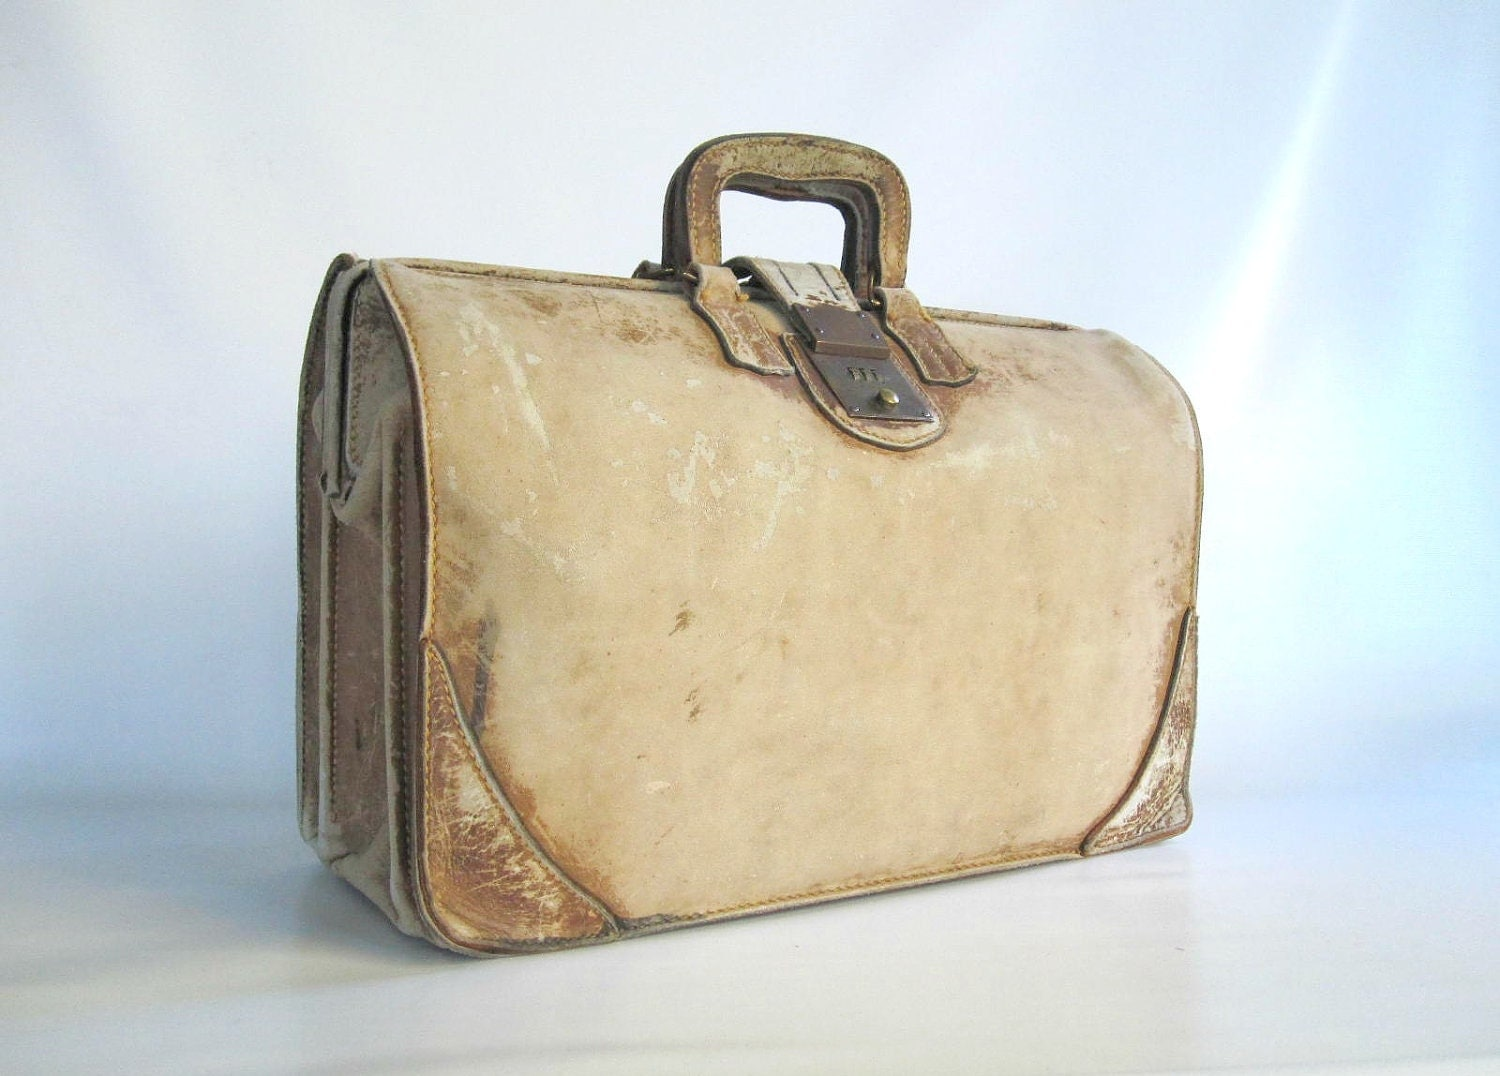 leather satchel lawyer doctor bag suitcase shabby chic